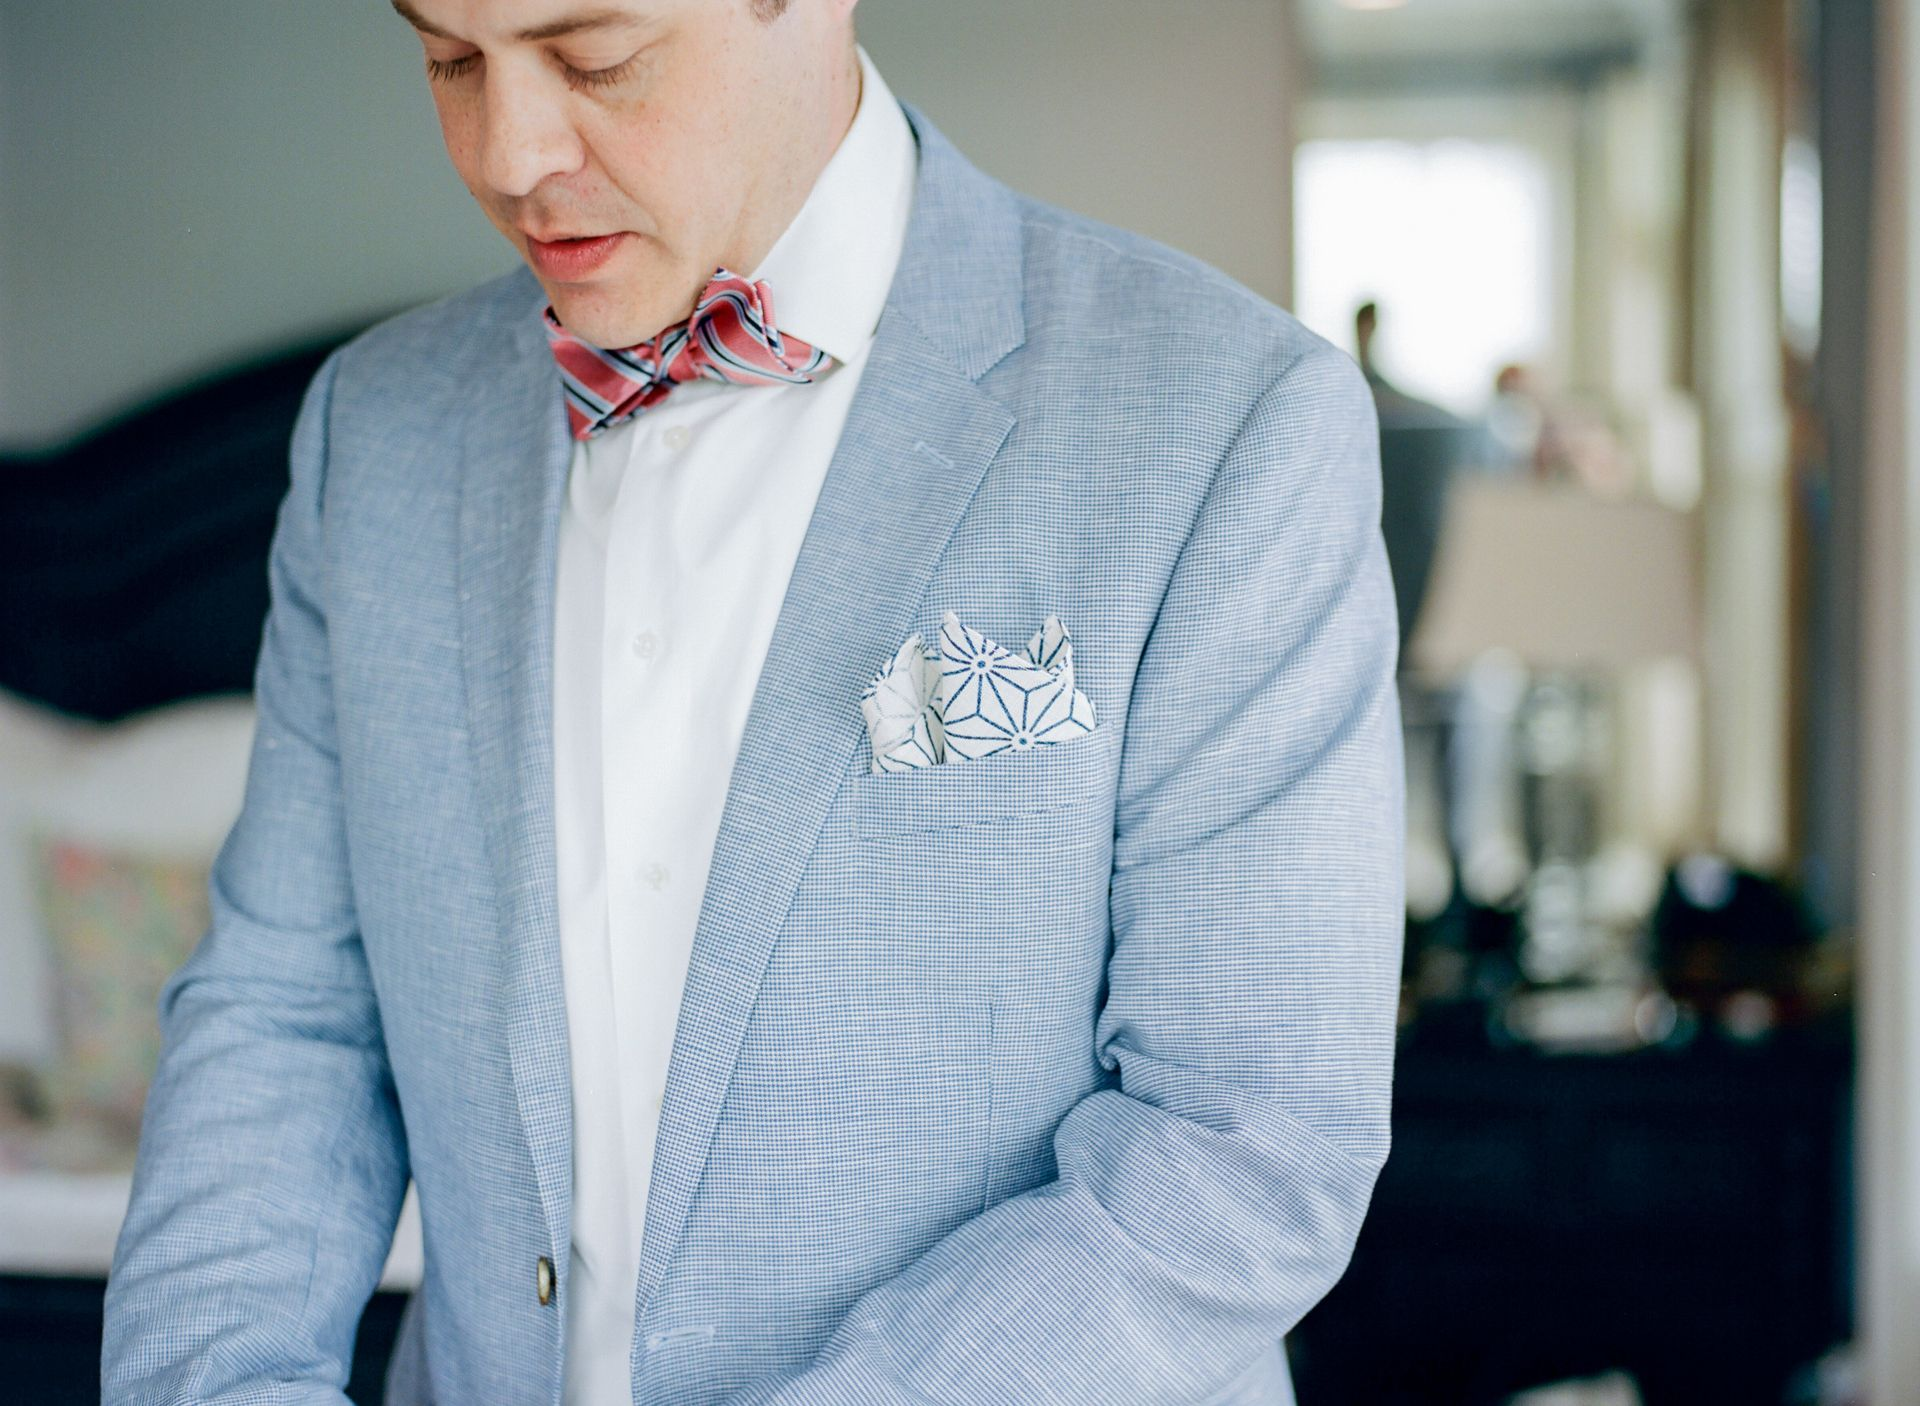 The Smarter Way to Wed | Blue linen suit, Grooms and Weddings